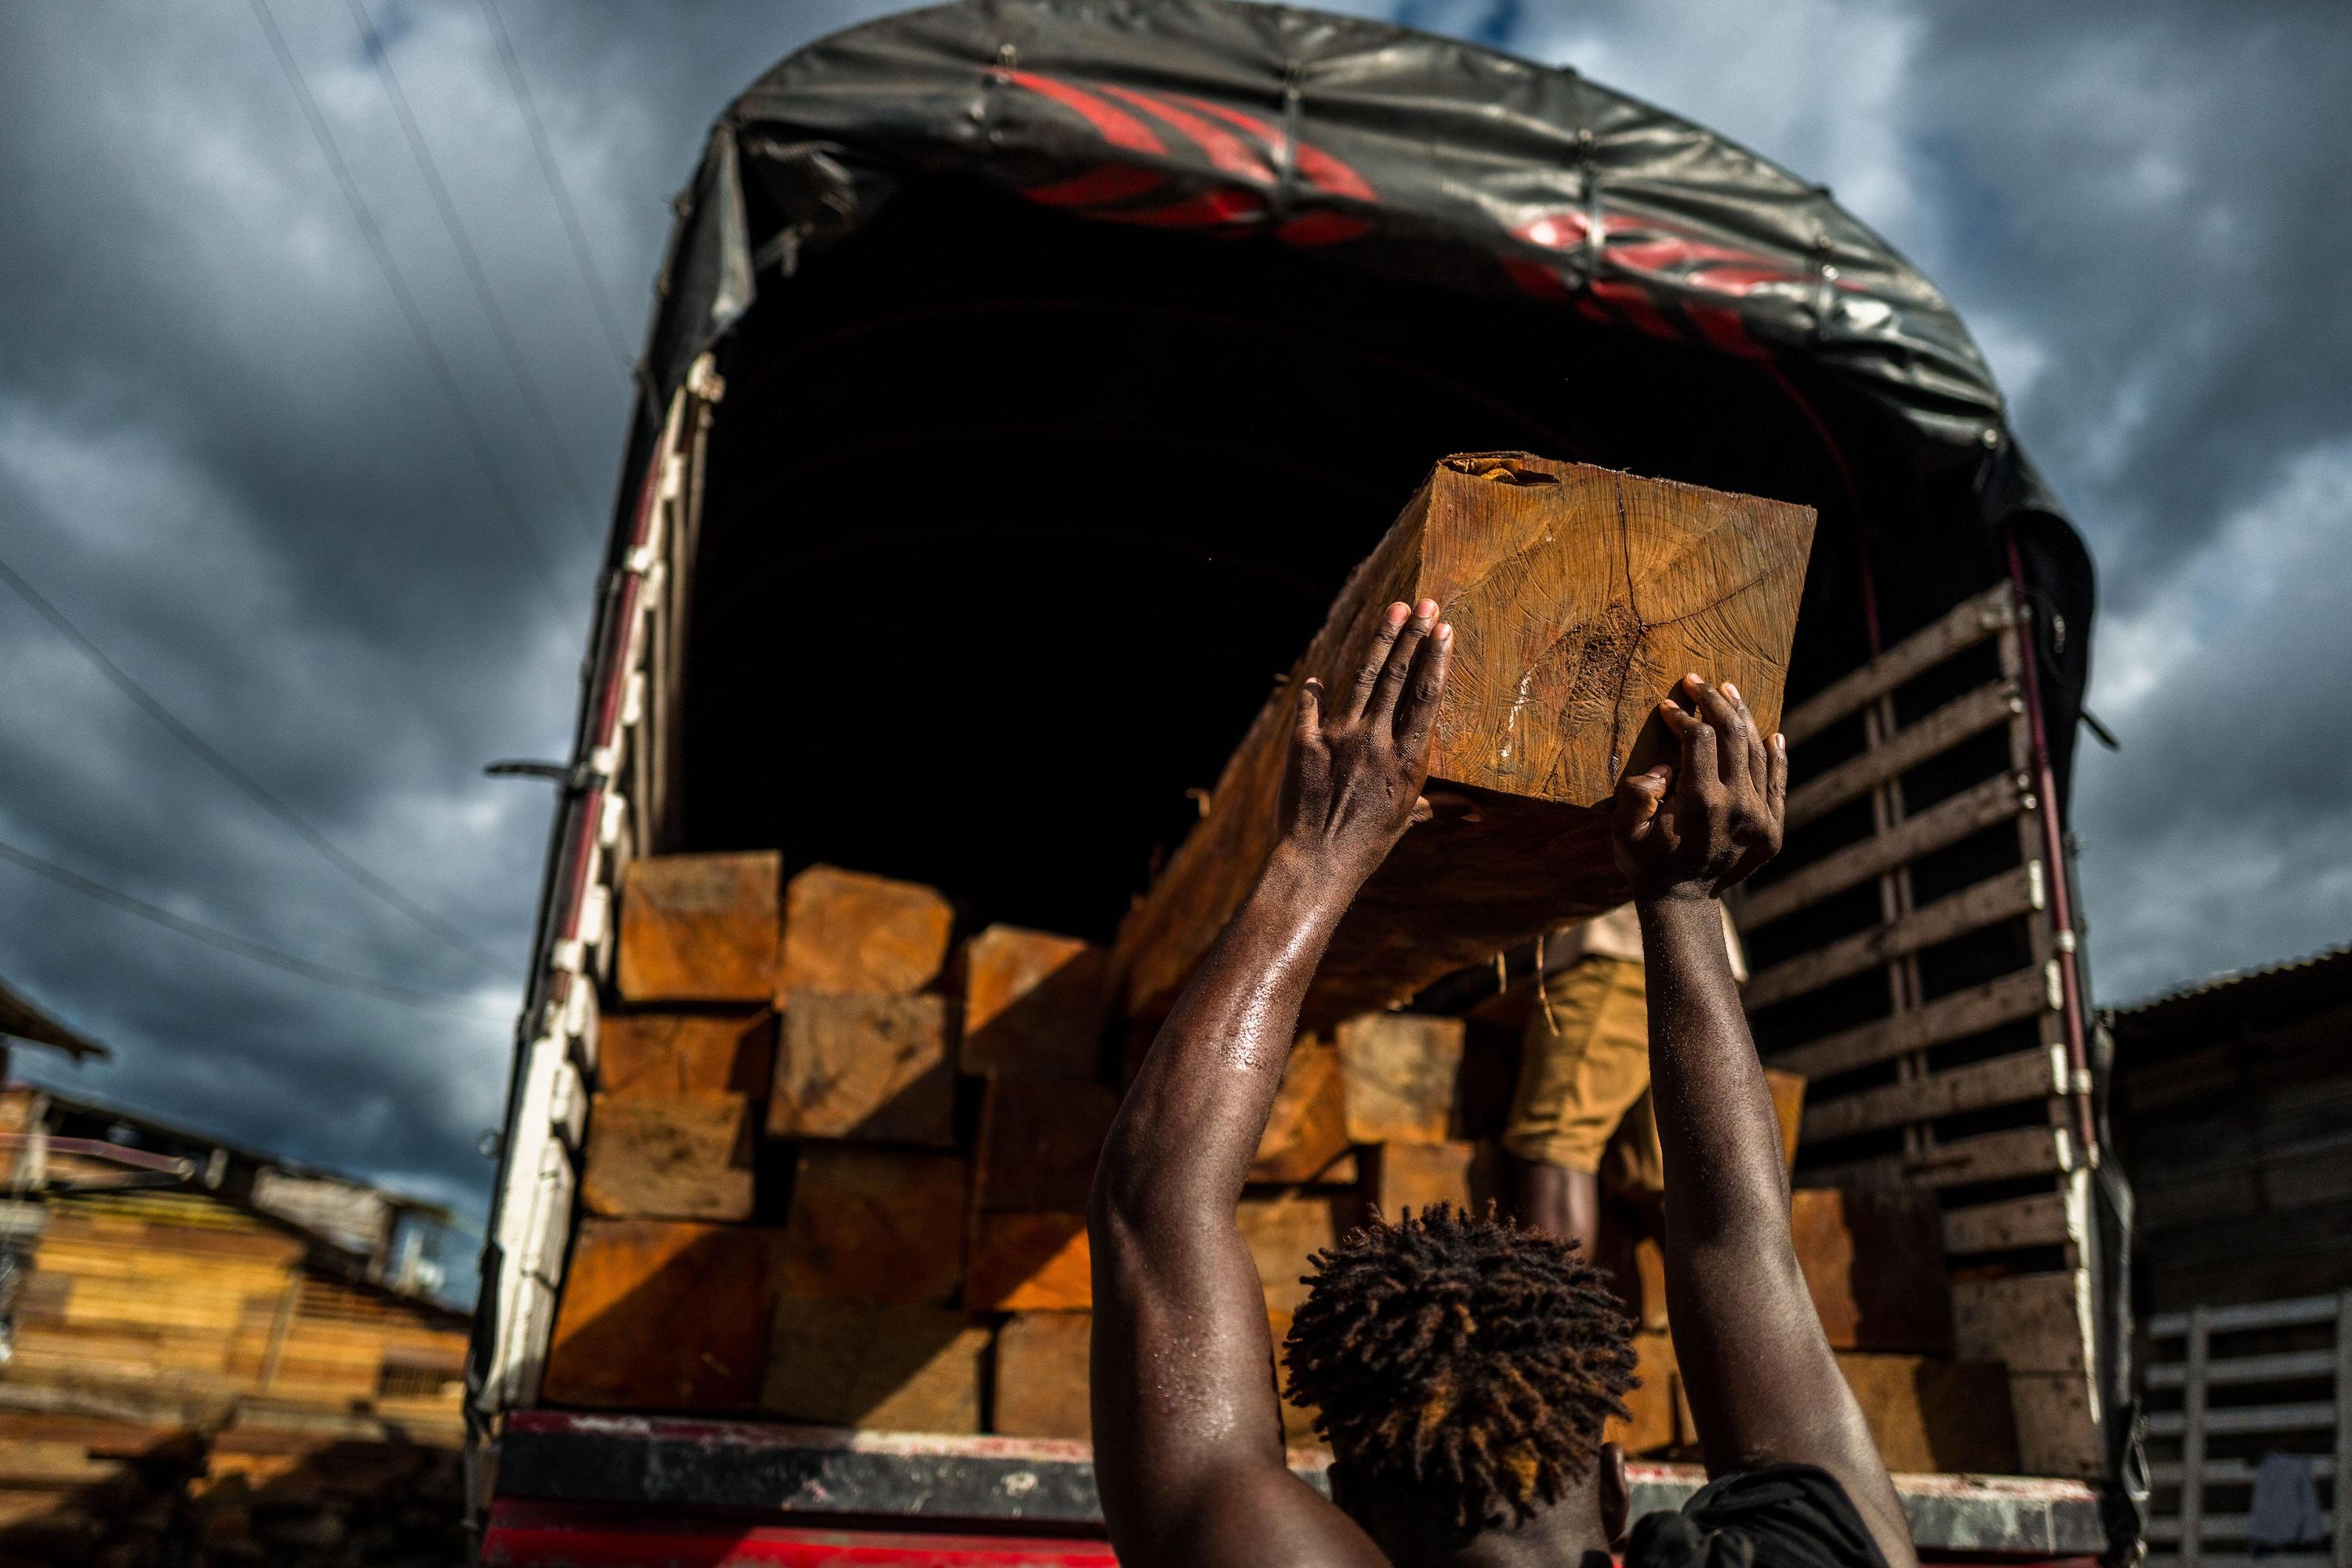 A worker loading timber onto a truck in Colombia (Image: Jan Sochor / Alamy)